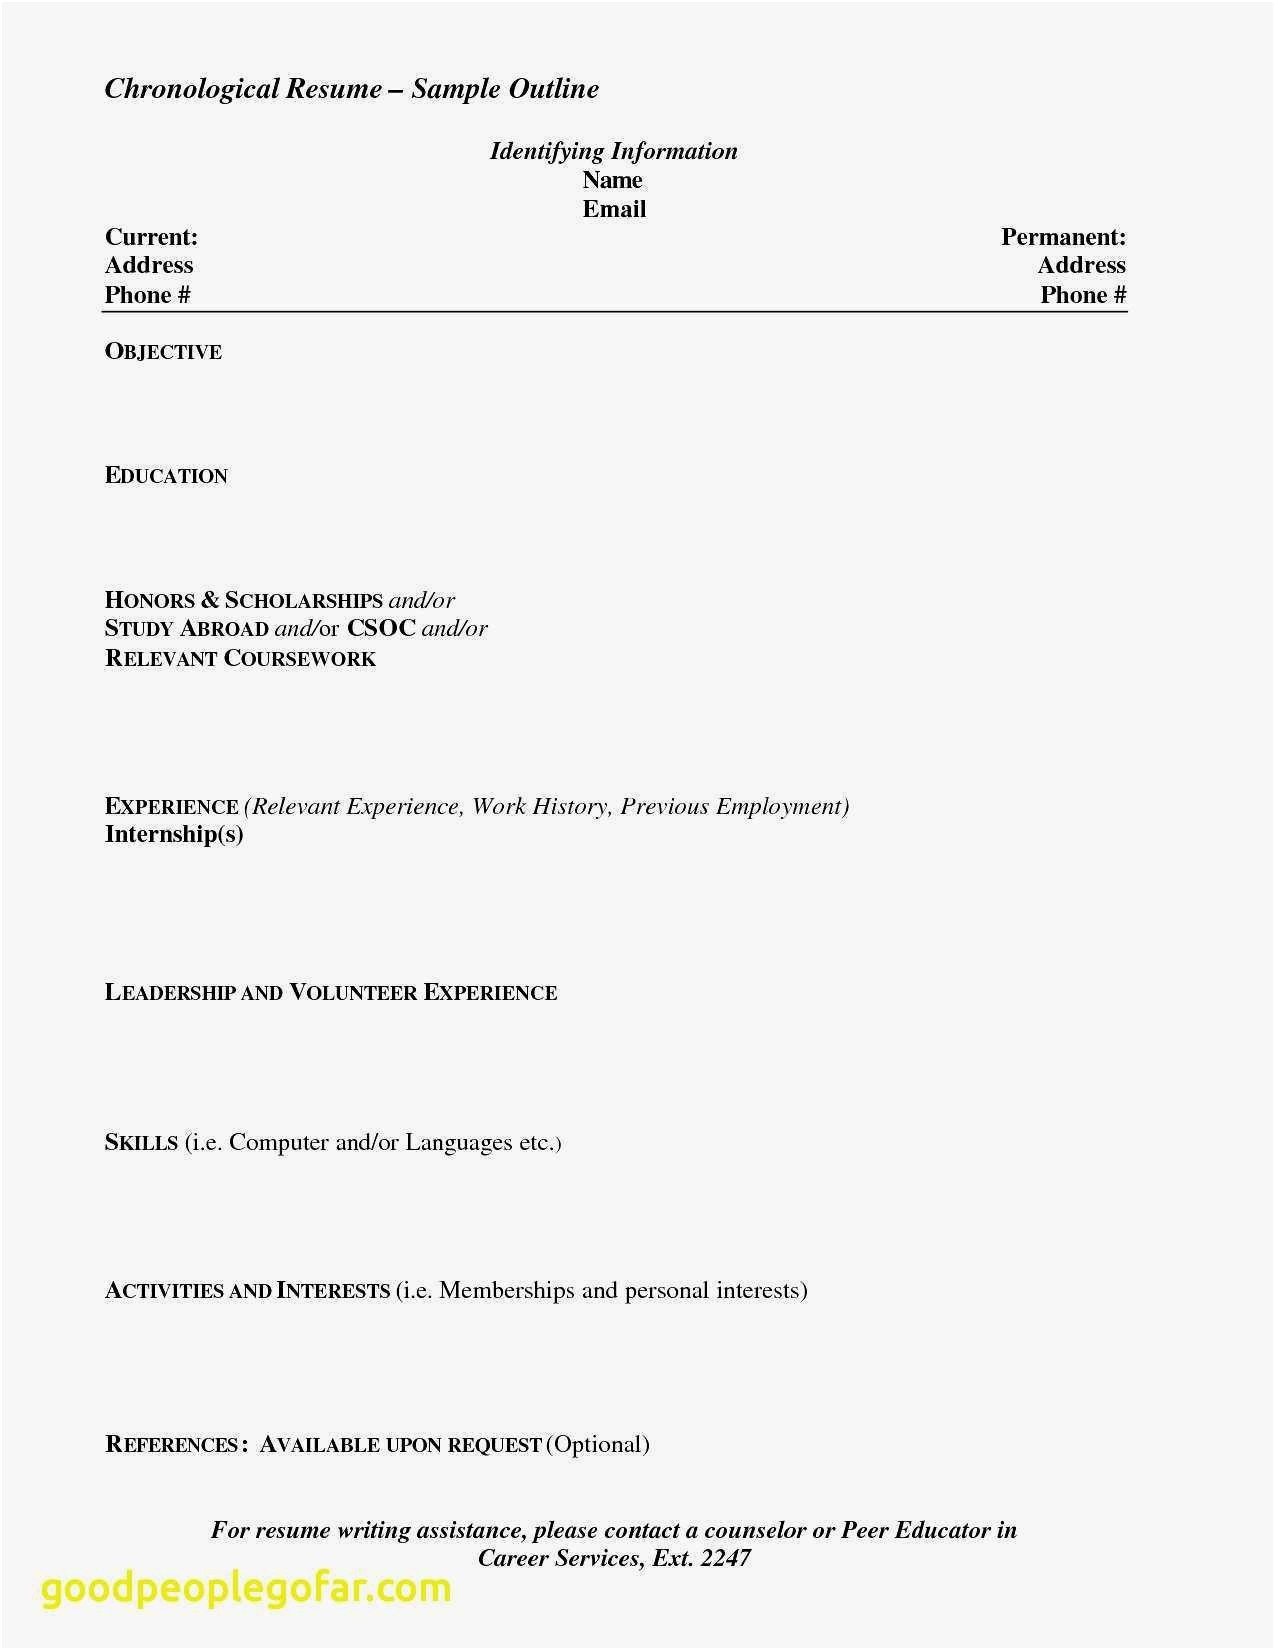 resume high school Collection-Sample Resume For Recent High School Graduate Reference Unique Resume For Highschool Students Excellent Resumes 0d High 5-q